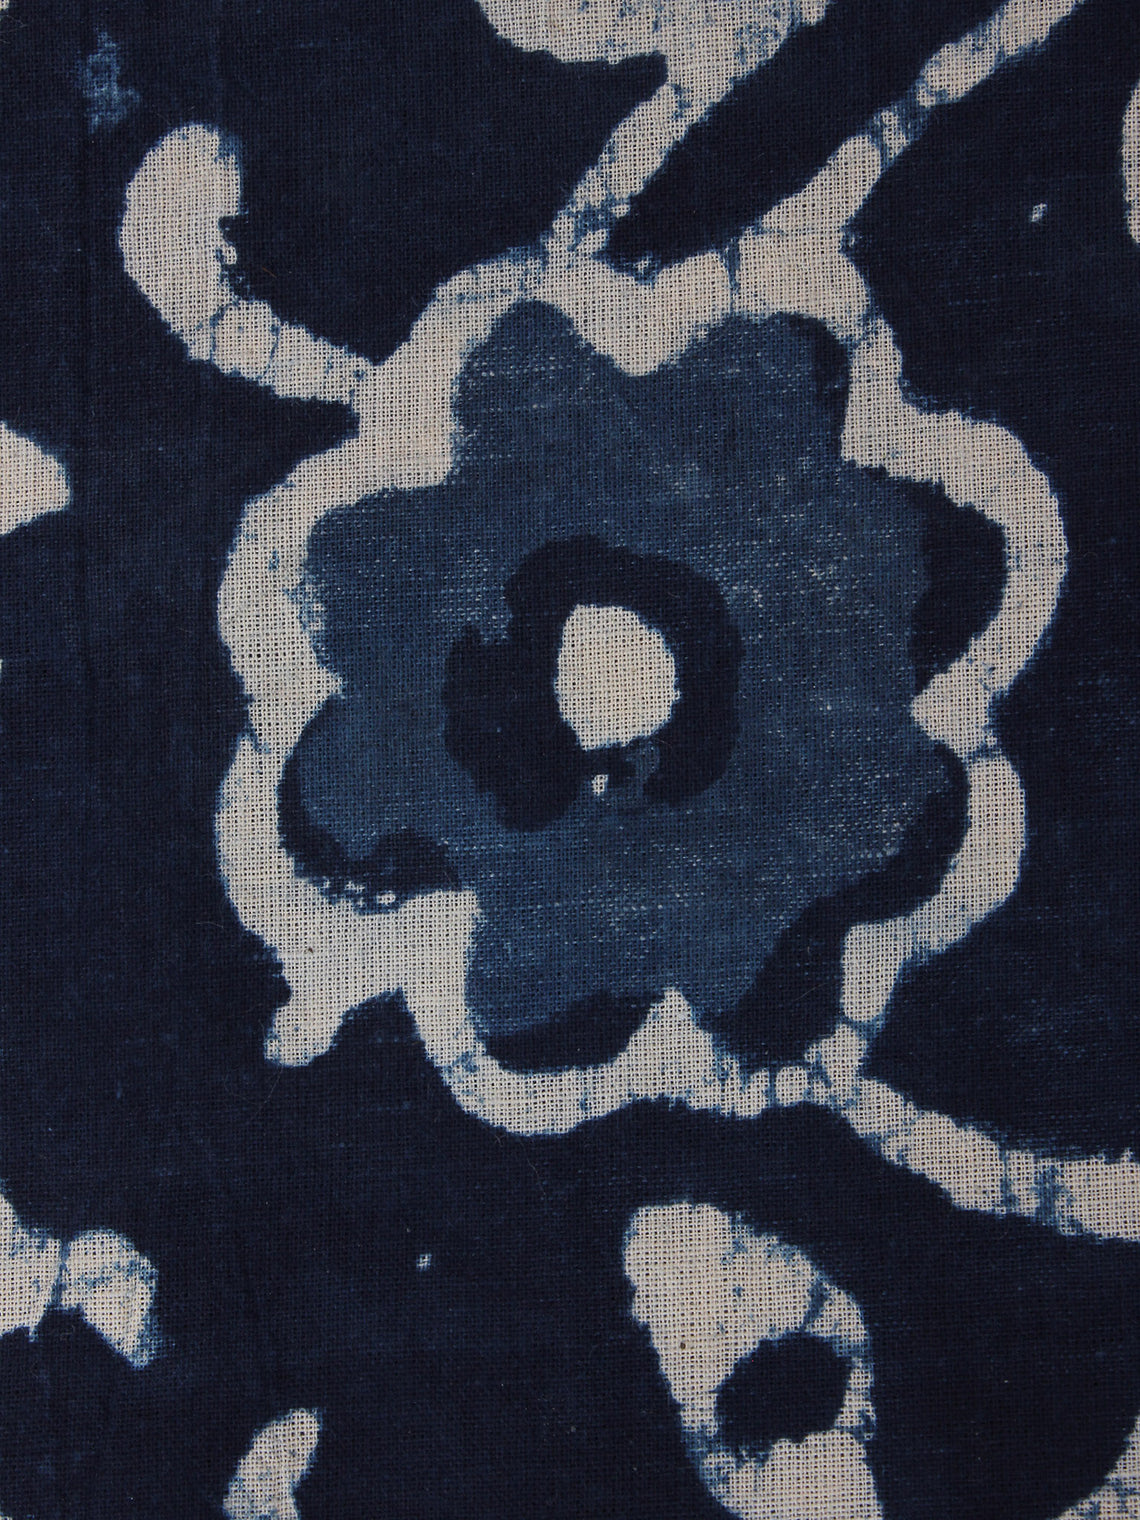 Indigo Blue White Hand Block Printed Cotton Fabric Per Meter - F0916015